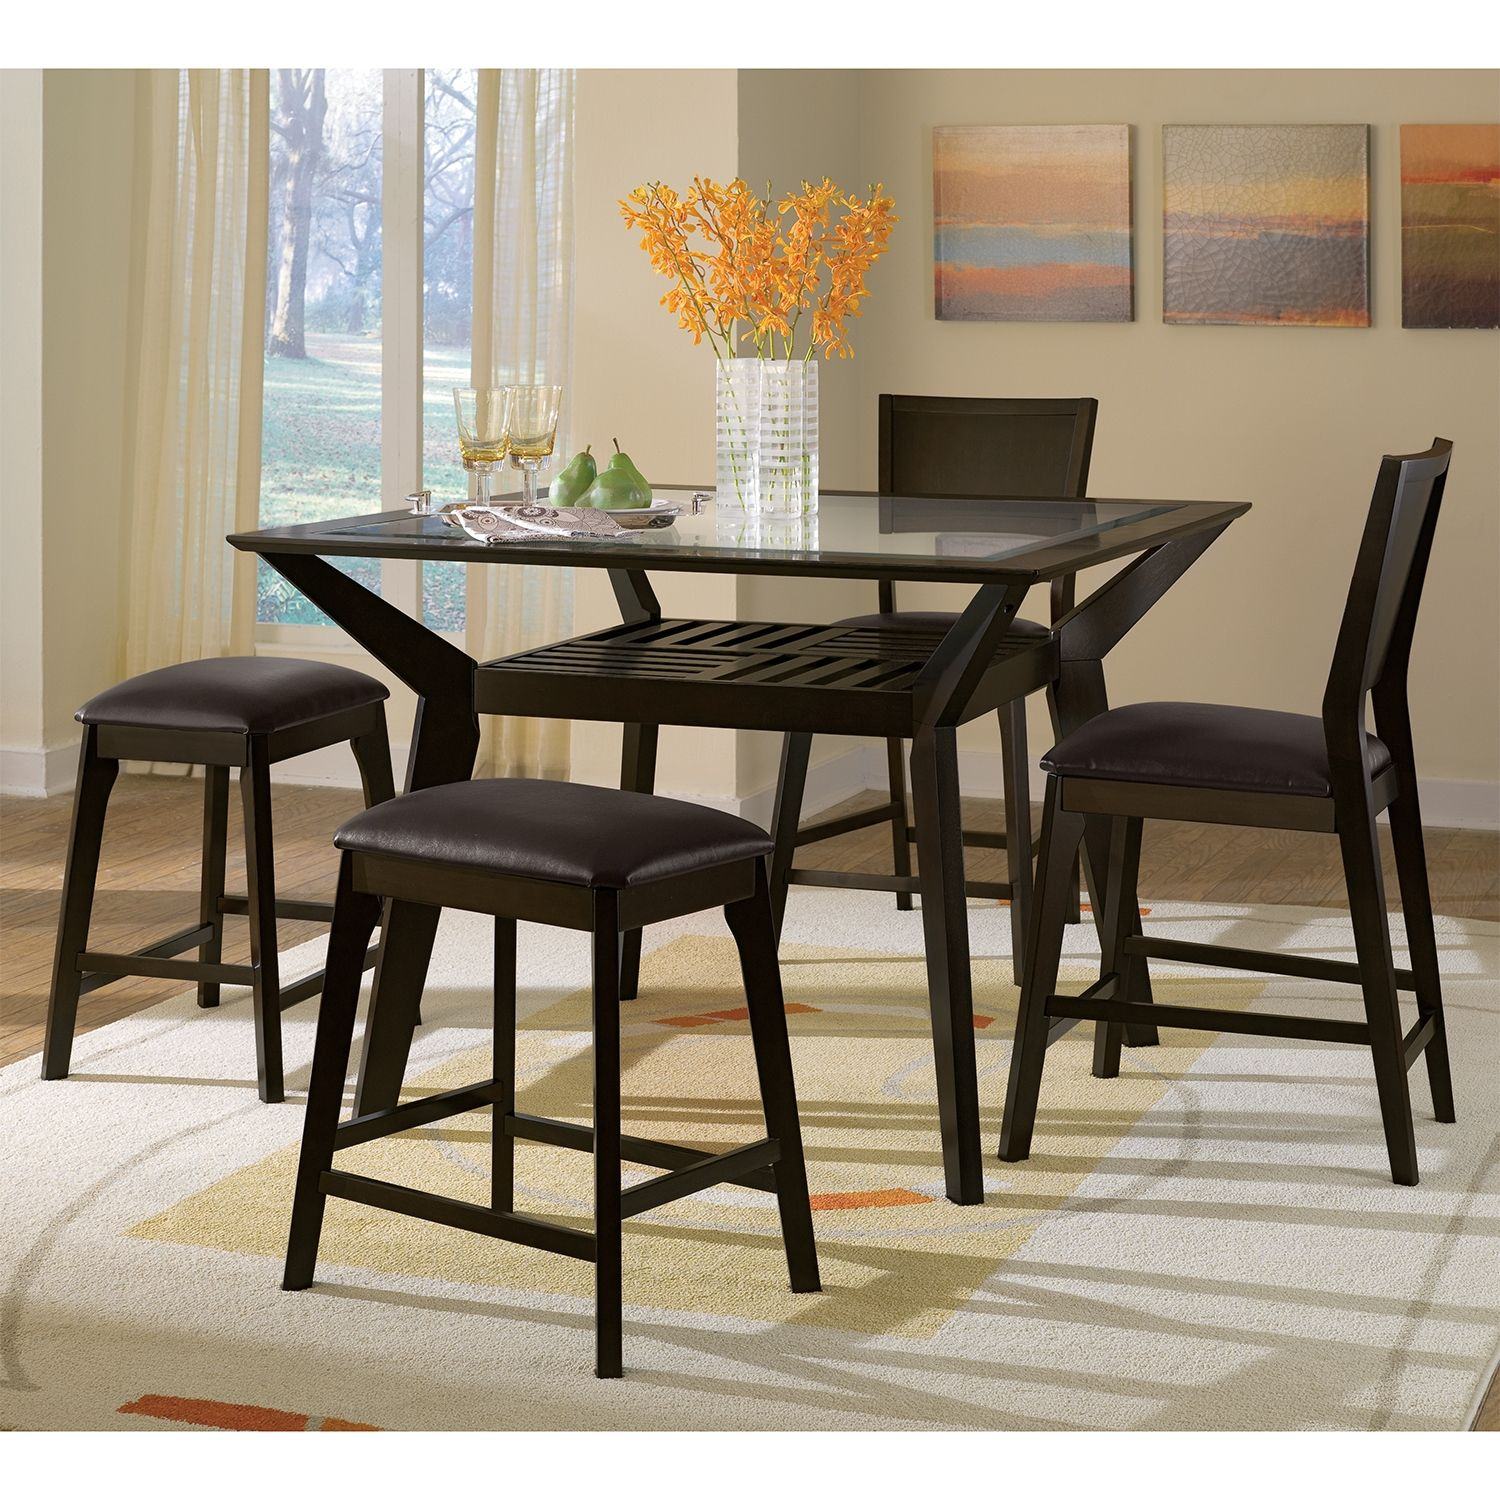 Mystic 5 Pc Counter Height Dinette W 2 Backless Stools Value City Furniture I Could Do So